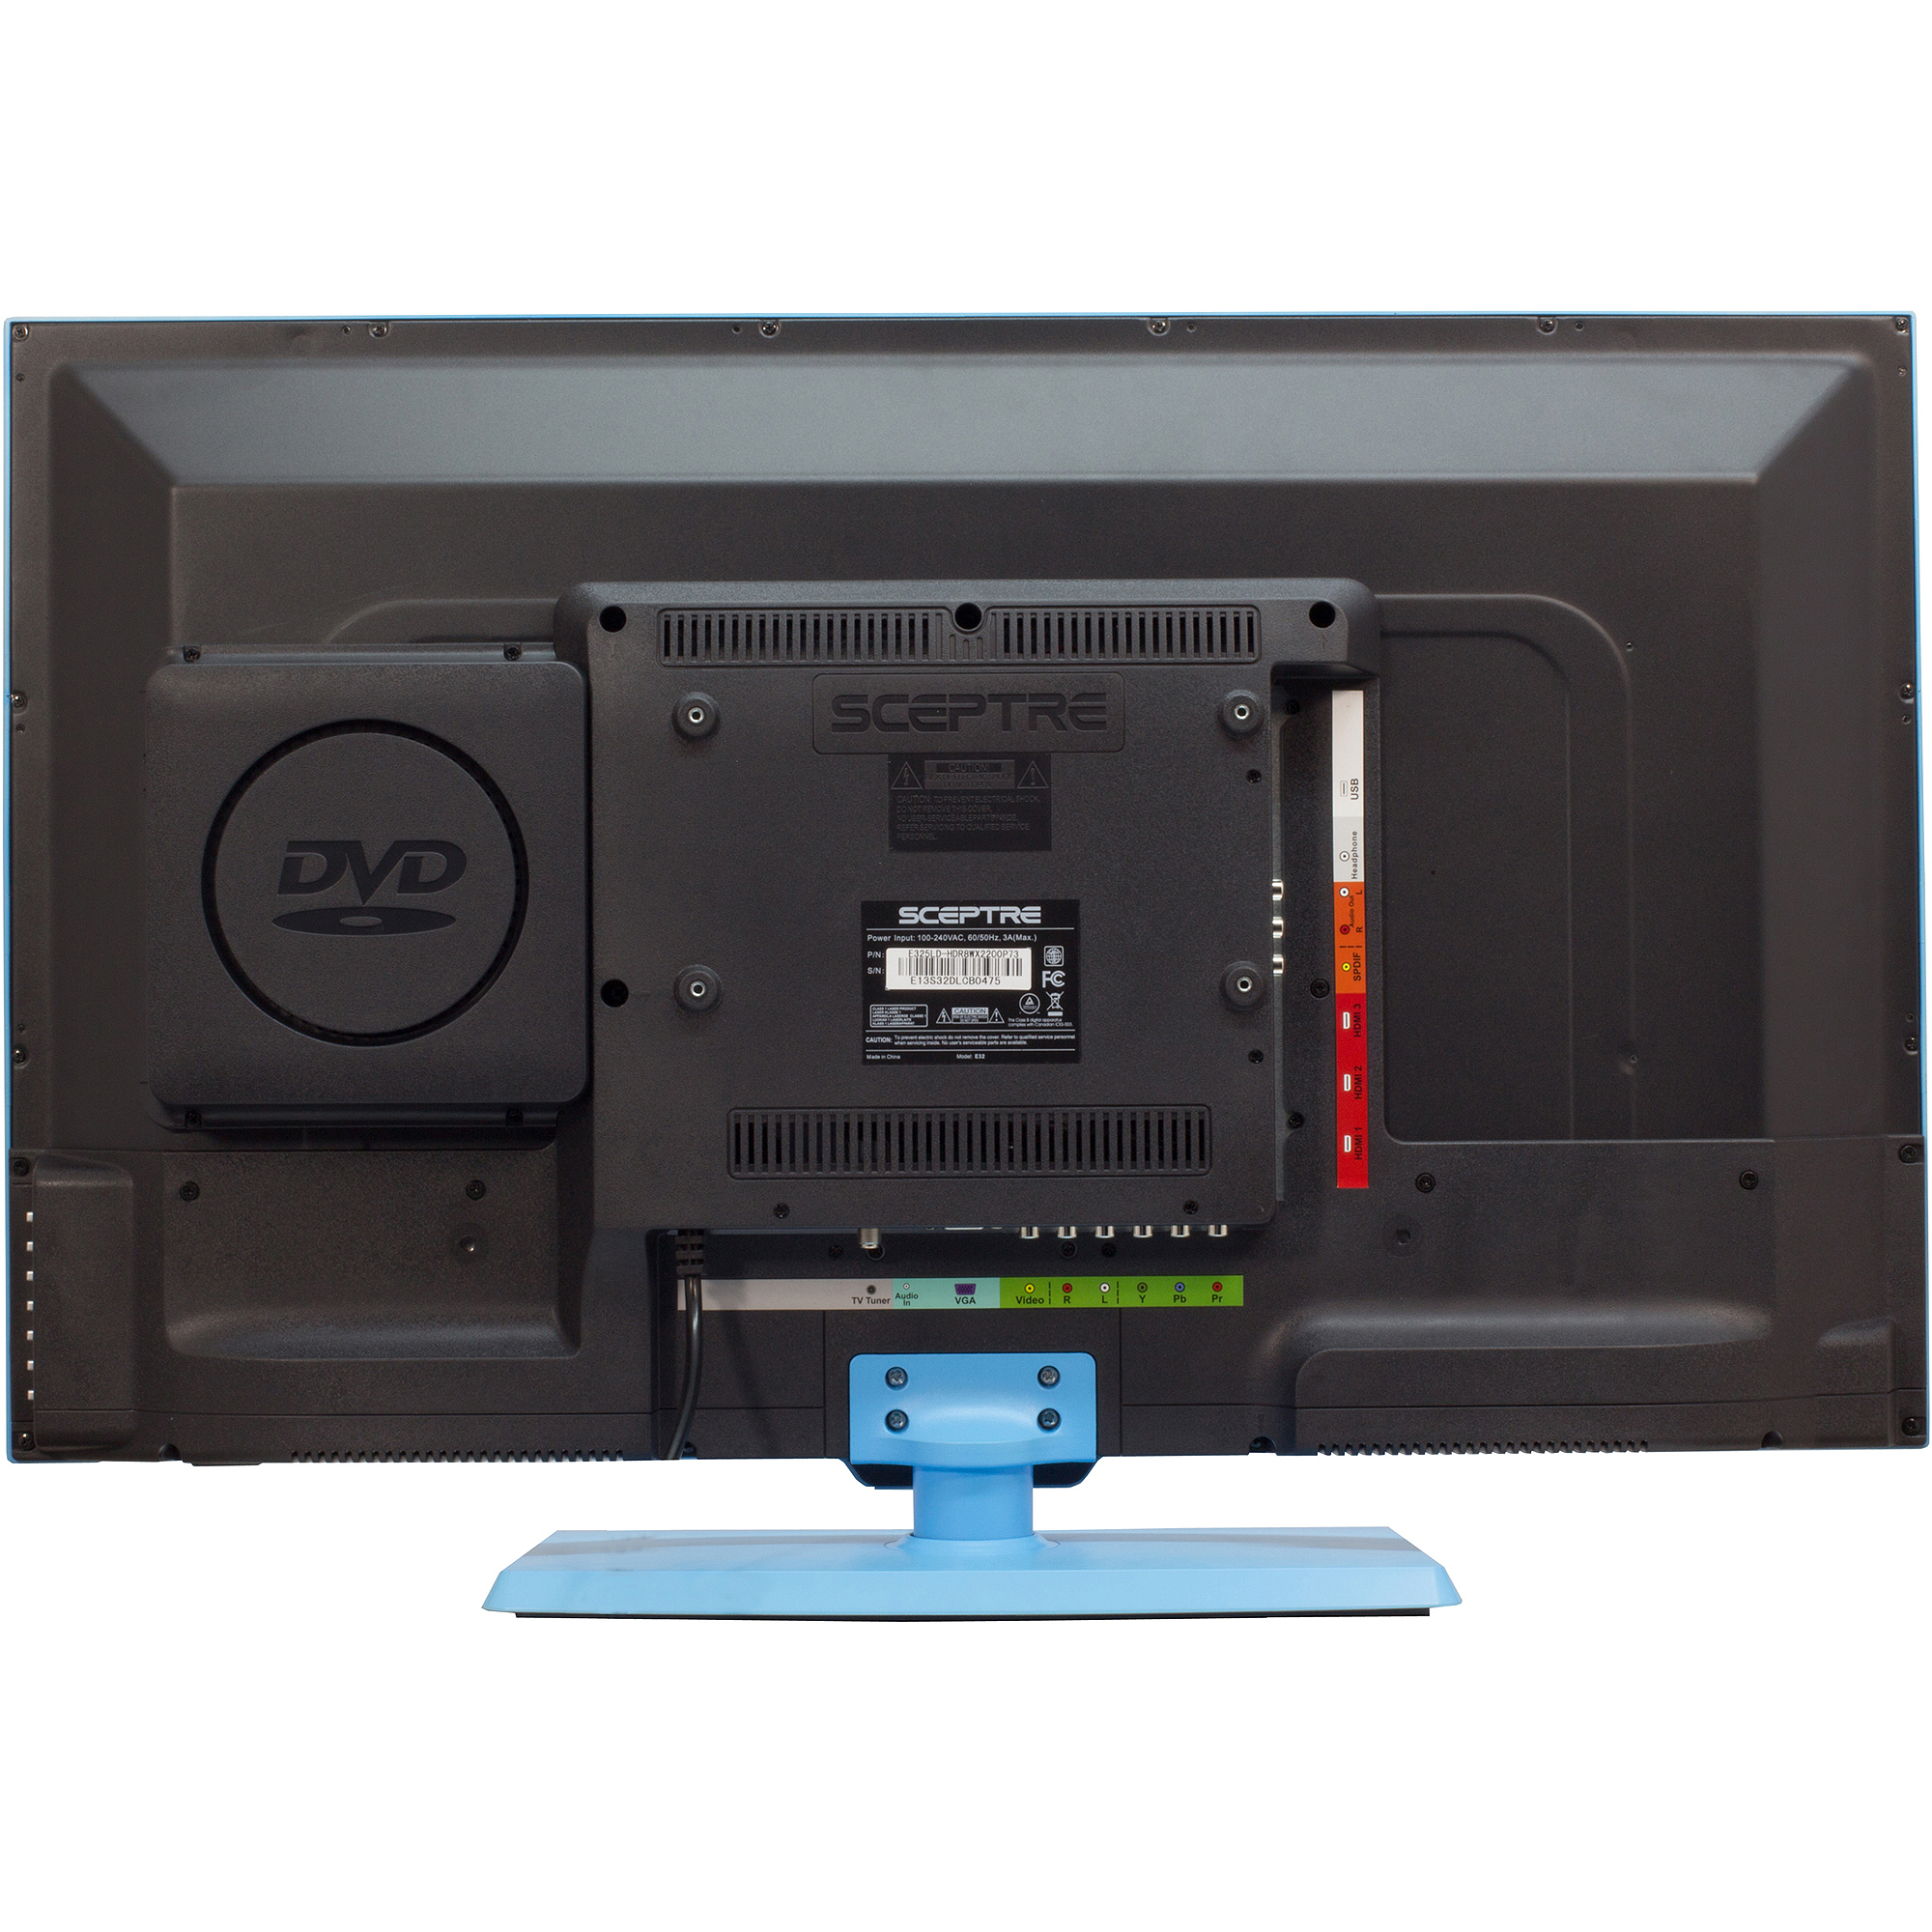 sceptre 32 720p 60hz class led hdtv with built in dvd player assorted colors ebay. Black Bedroom Furniture Sets. Home Design Ideas